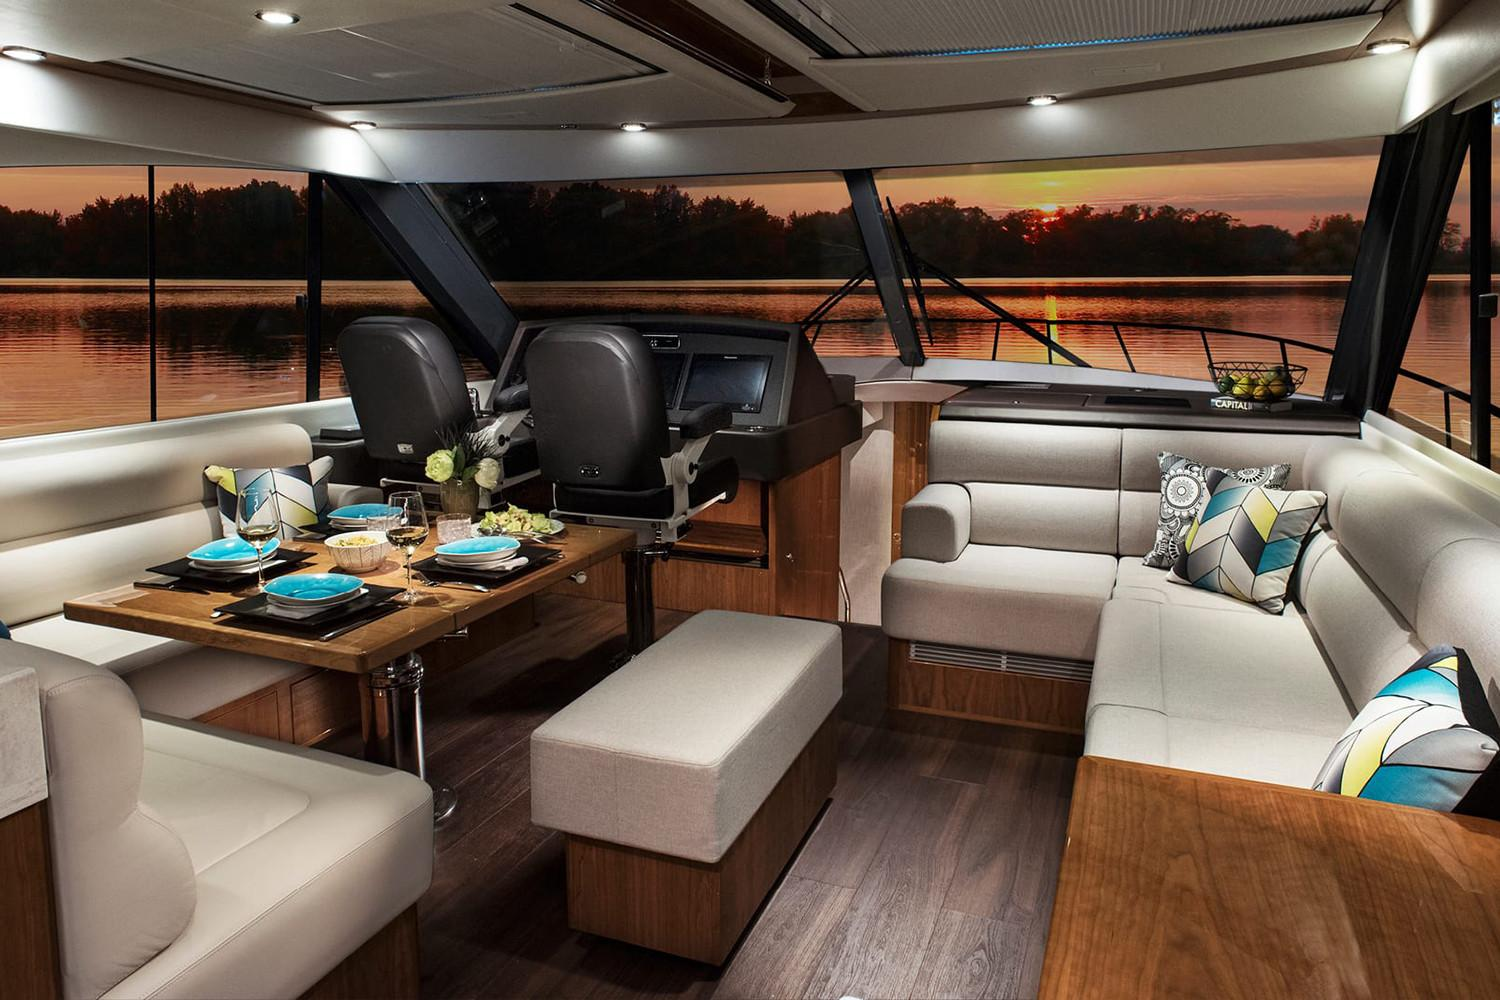 2020 Riviera 575 SUV #R031 inventory image at Sun Country Coastal in Newport Beach